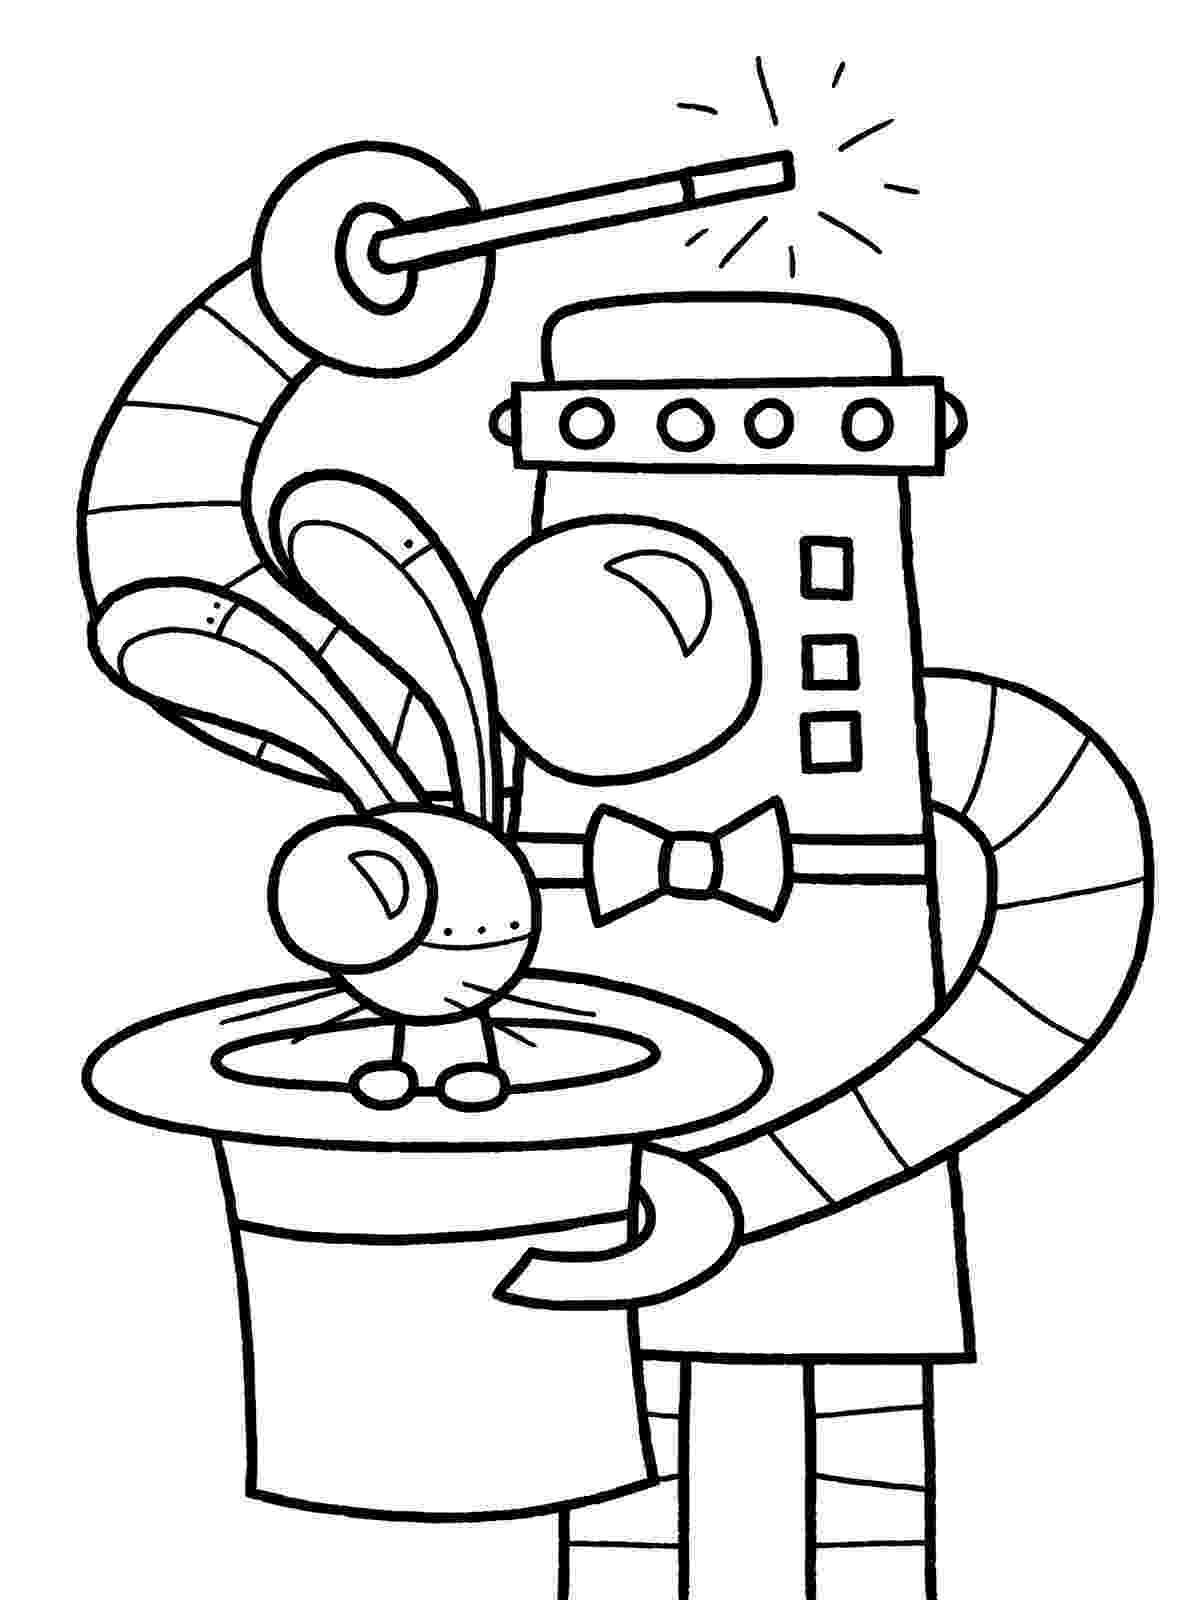 coloring page robot robots coloring pages learn to coloring page robot coloring